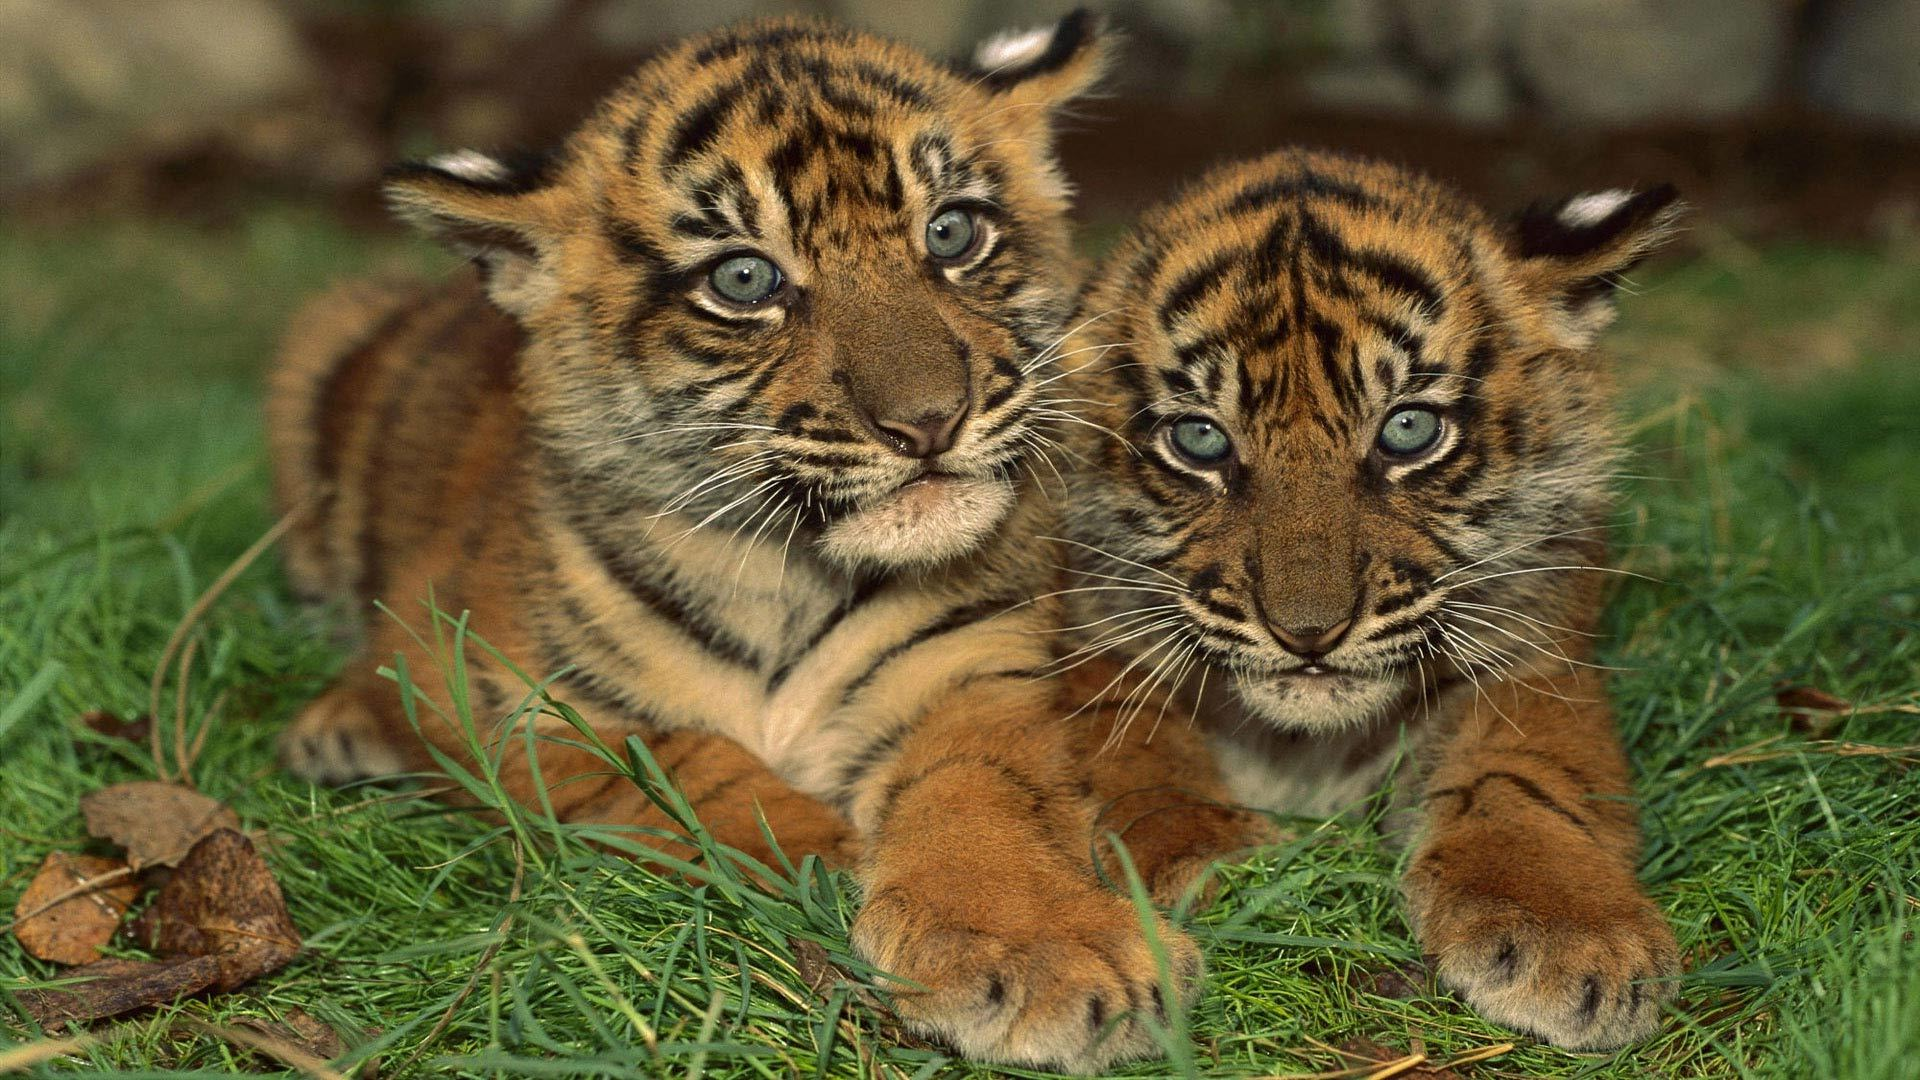 42553 download wallpaper Animals, Tigers screensavers and pictures for free